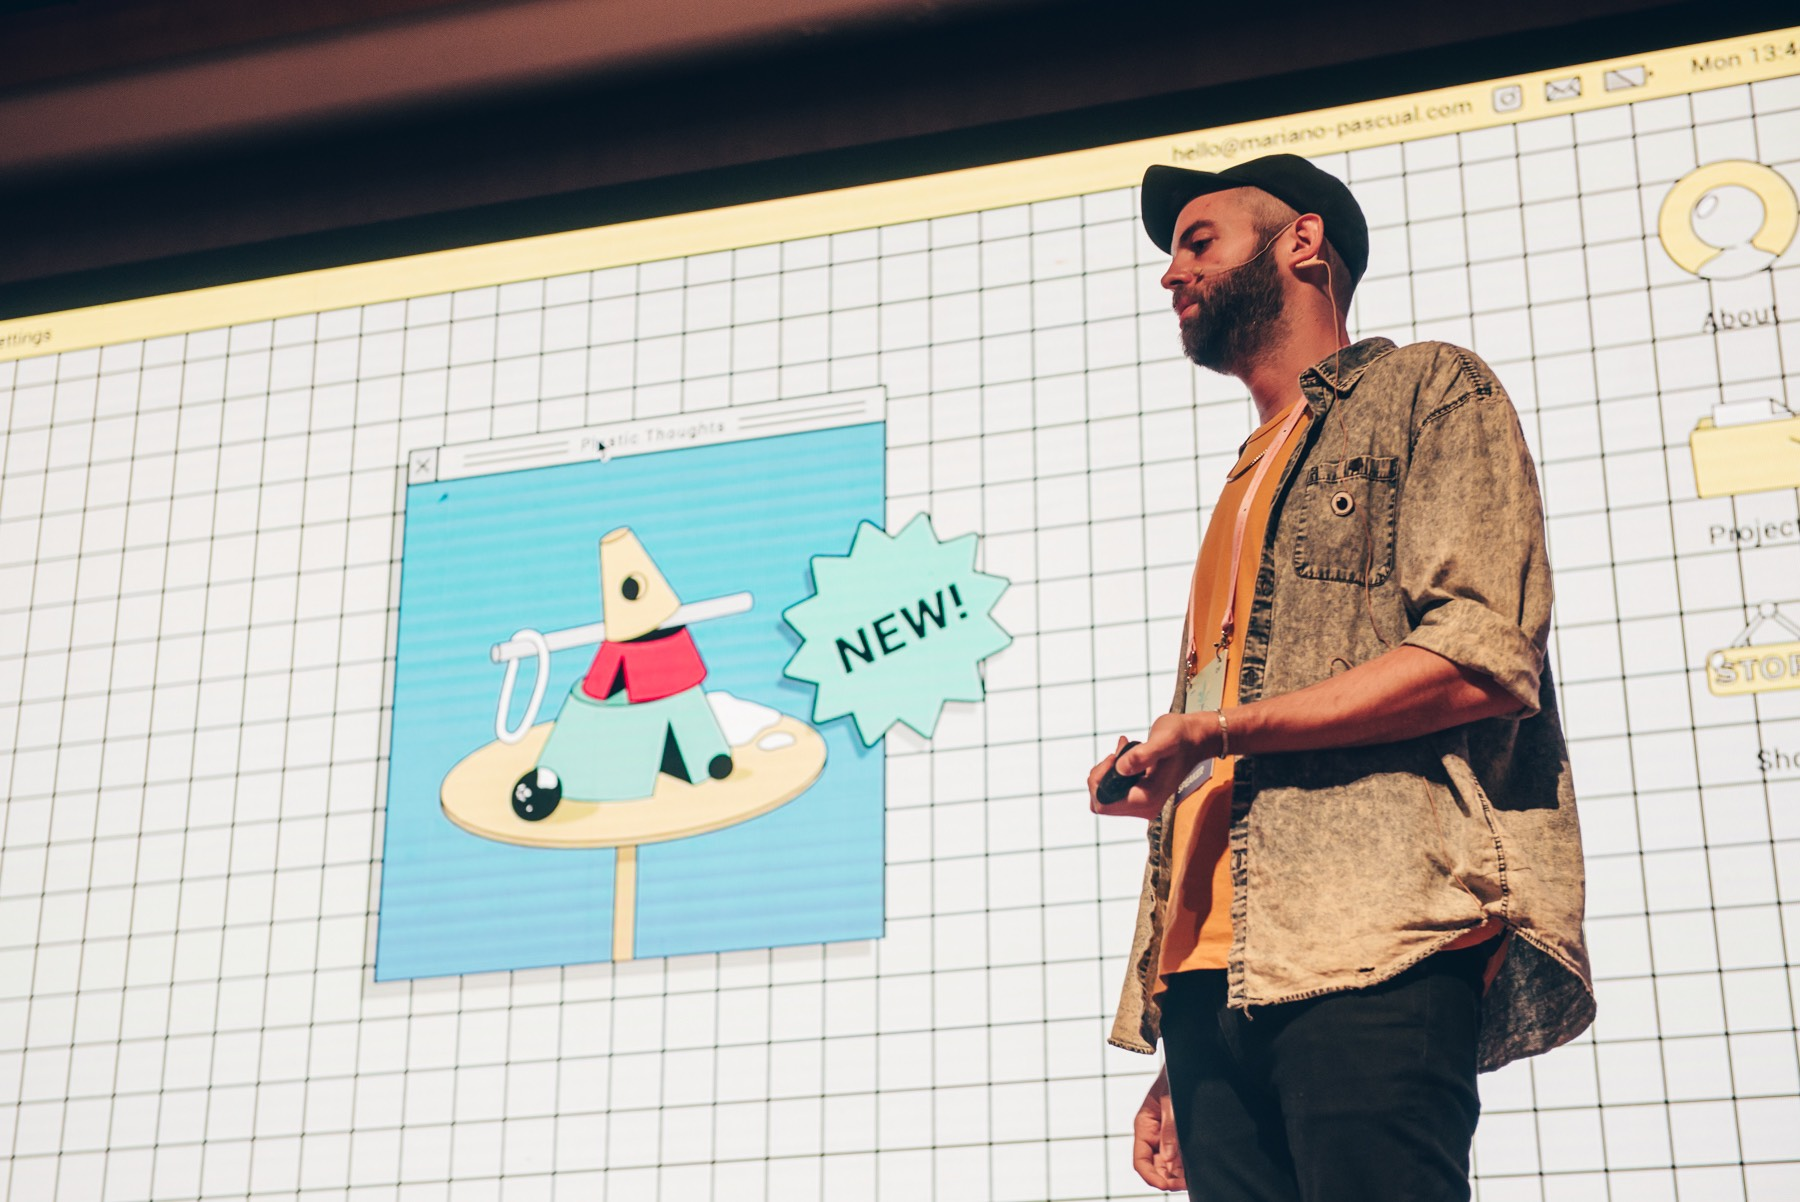 Mariano Pascual at OFFF TLV. Photo: Chris Milne